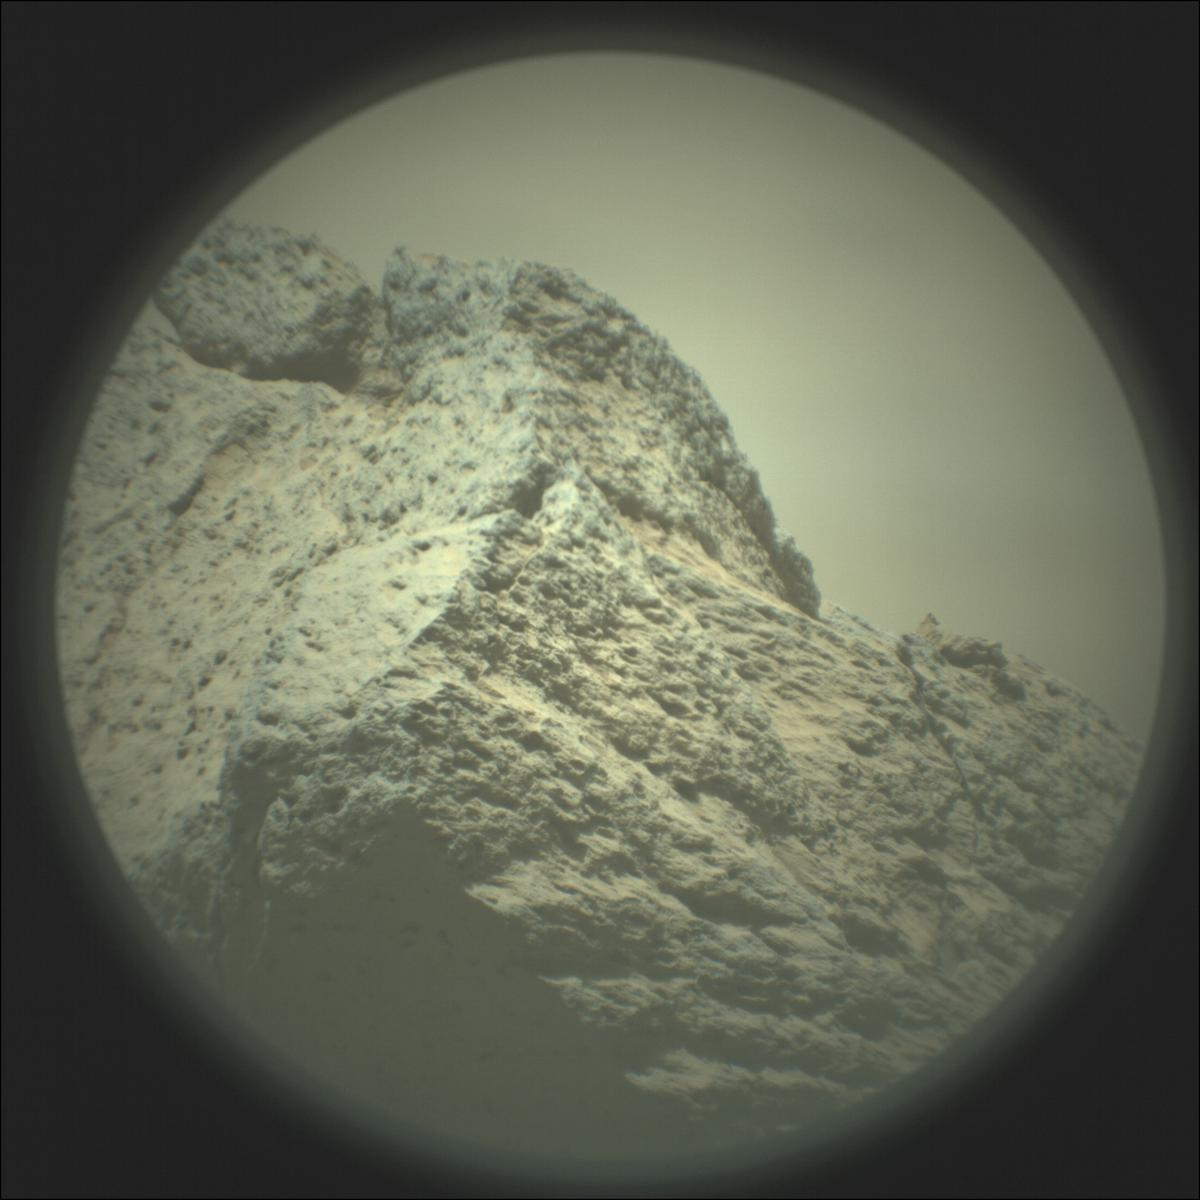 This image was taken by SUPERCAM_RMI onboard NASA's Mars rover Perseverance on Sol 110